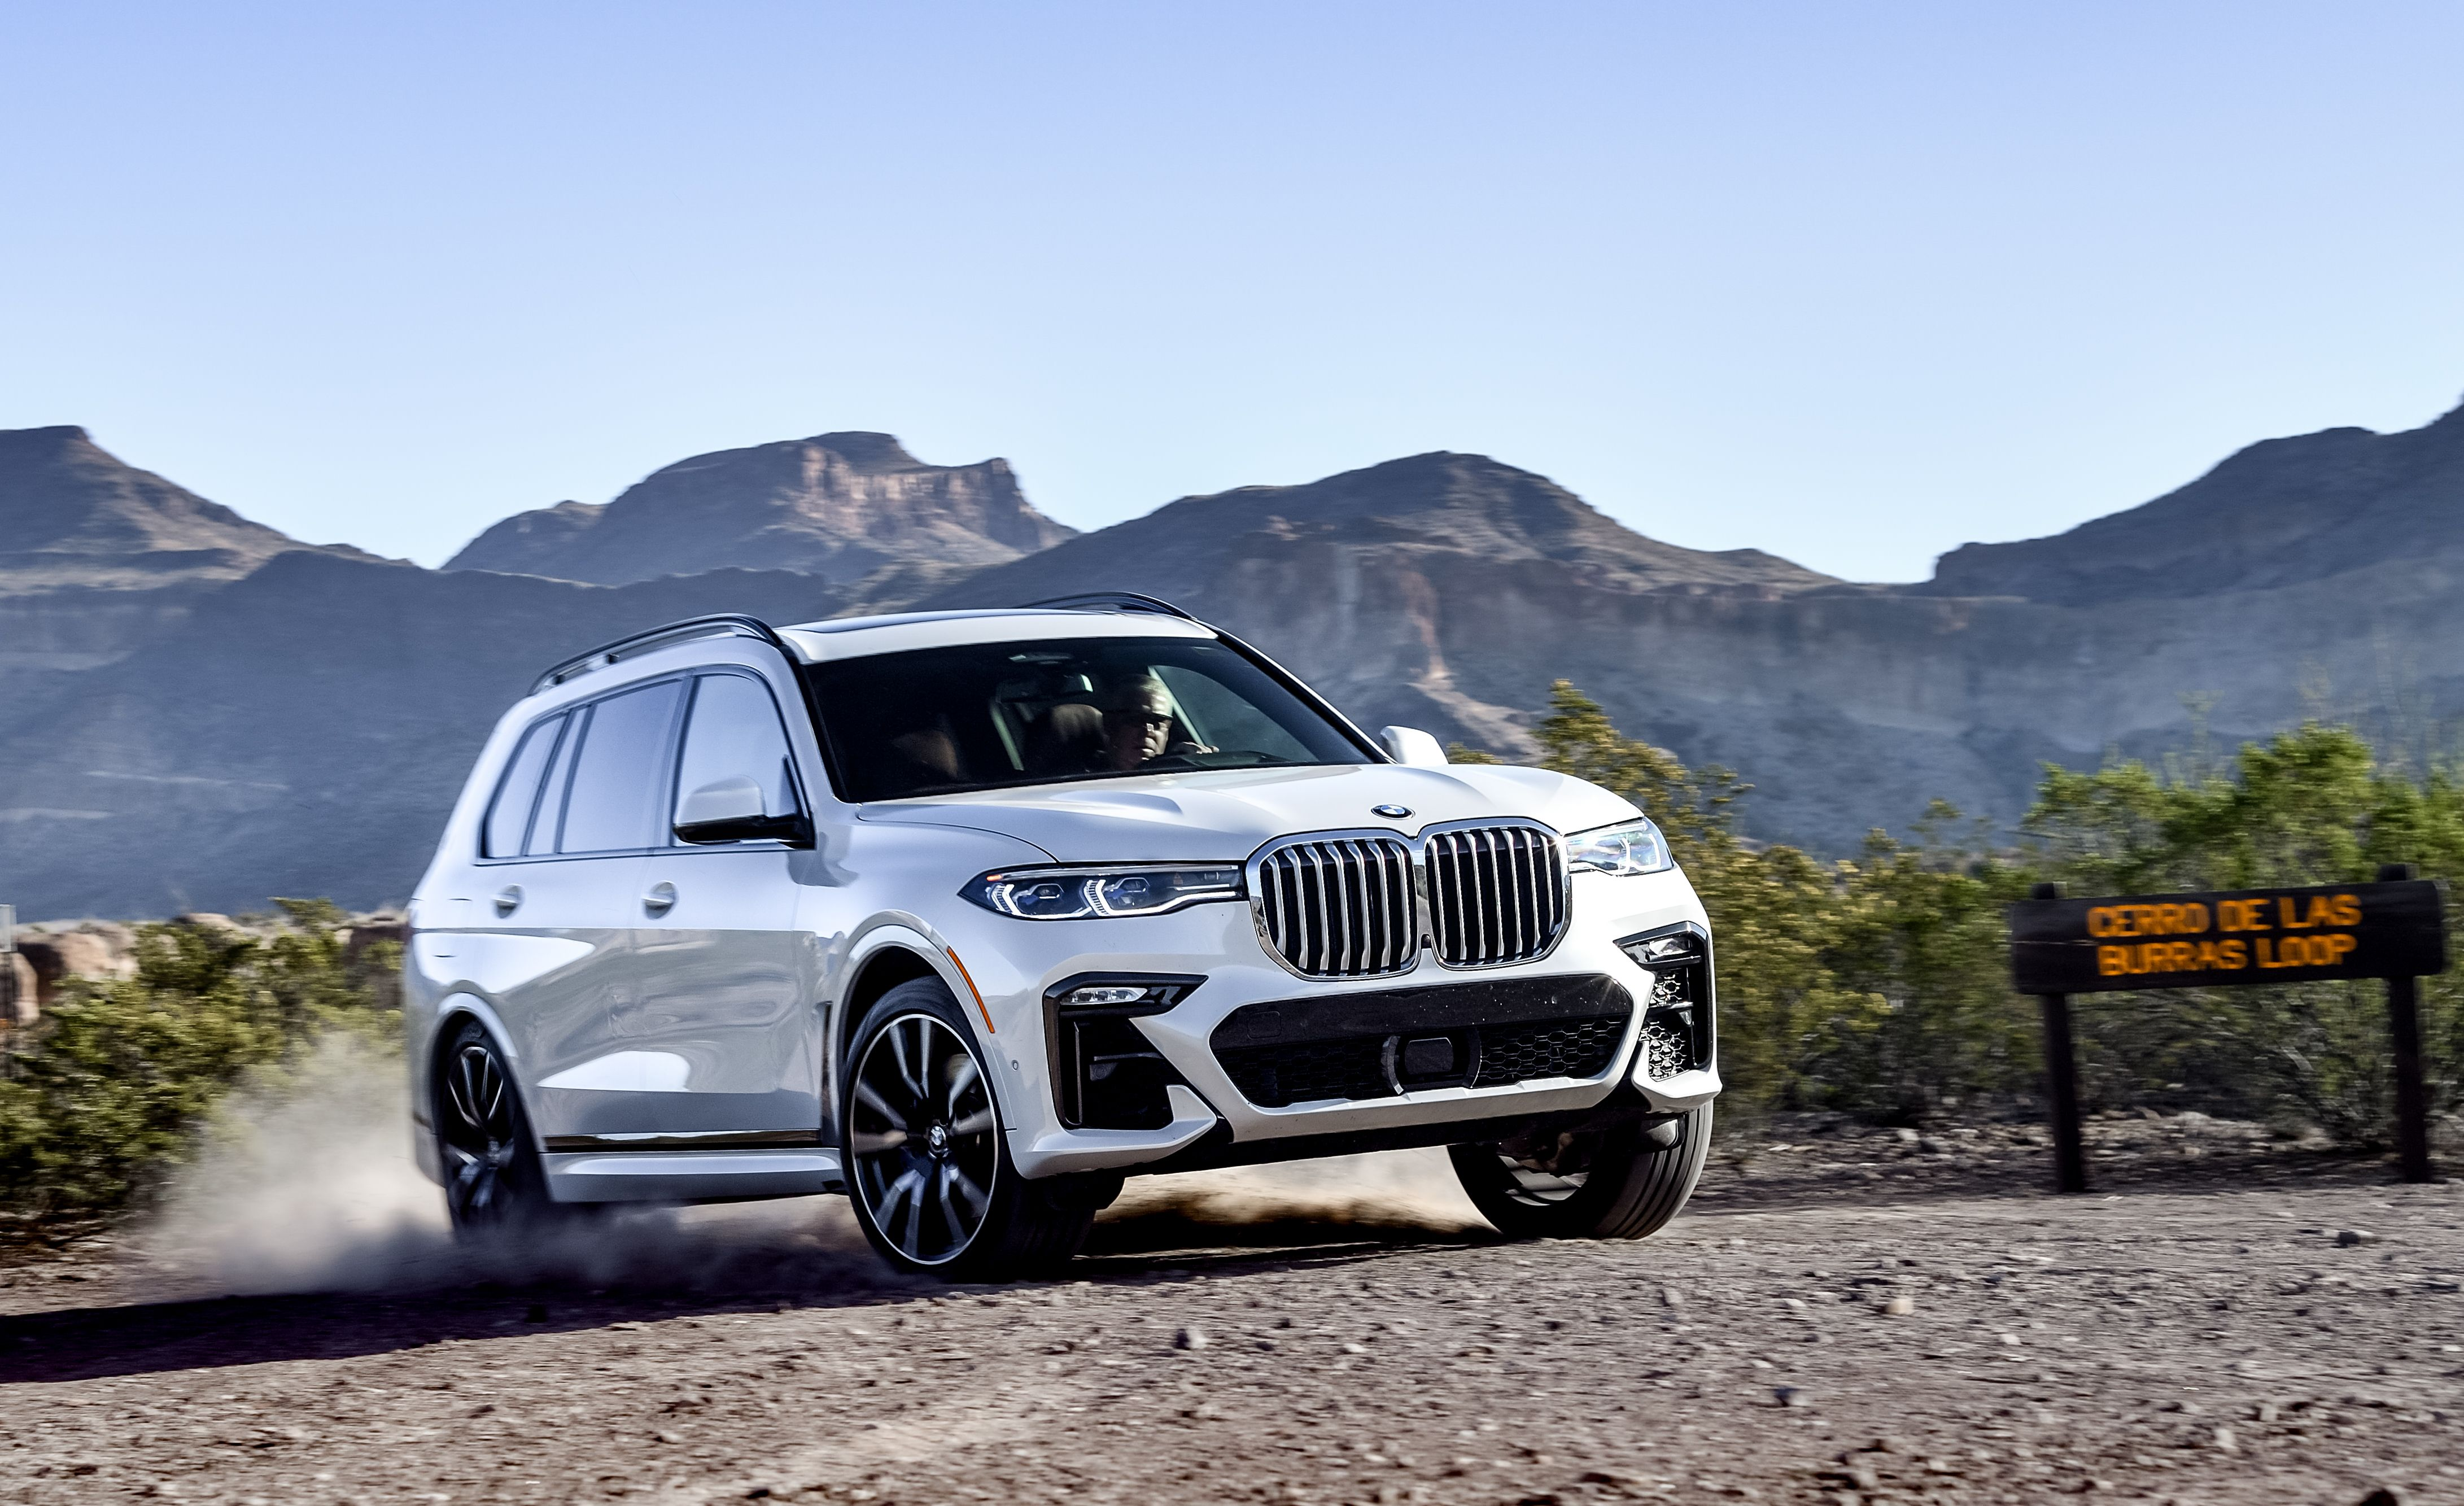 2019 Bmw X7 Is A 3 Row Luxury Suv That S Impossible To Overlook